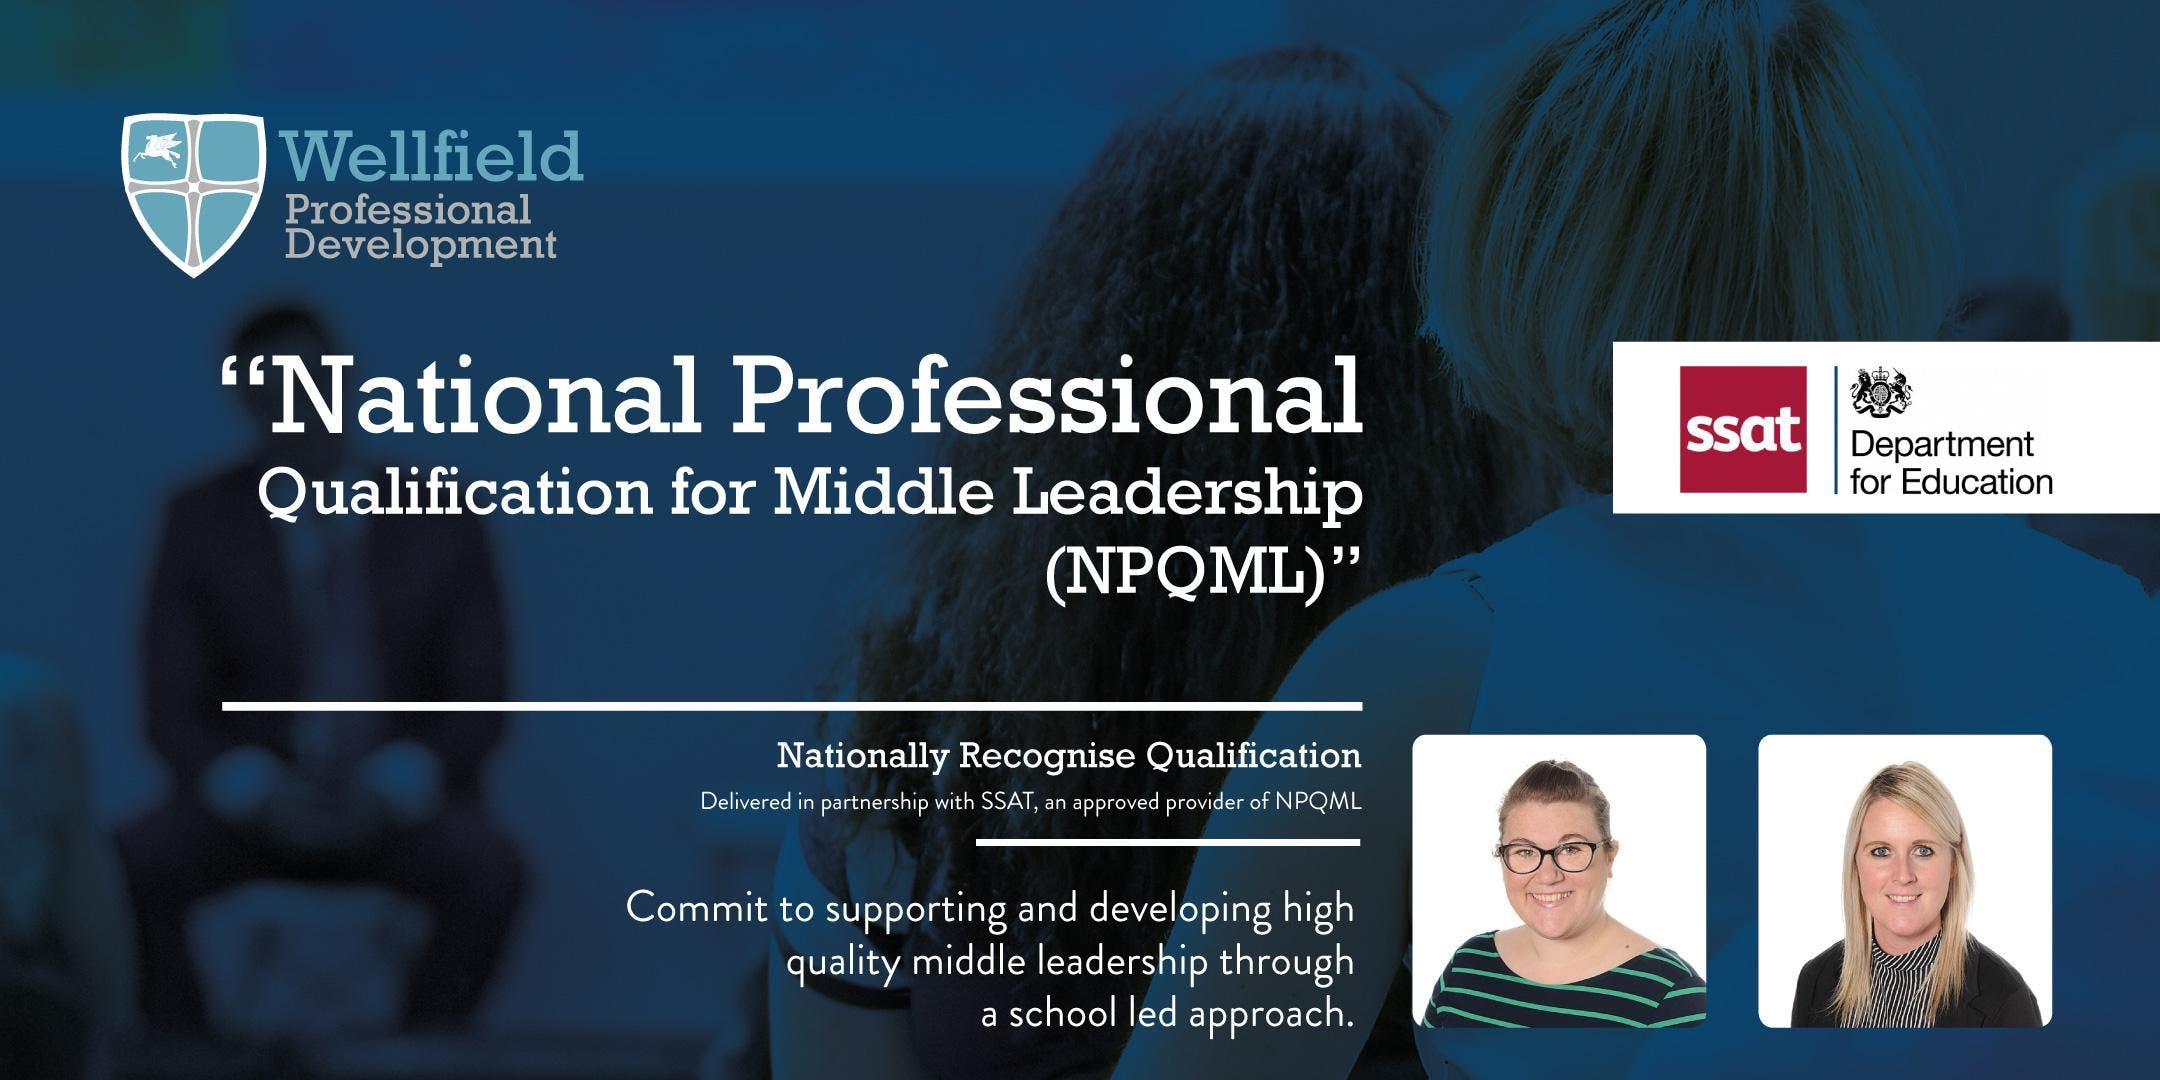 Wellfield Professional Development - National Professional Qualification for Middle Leadership (NPQML)